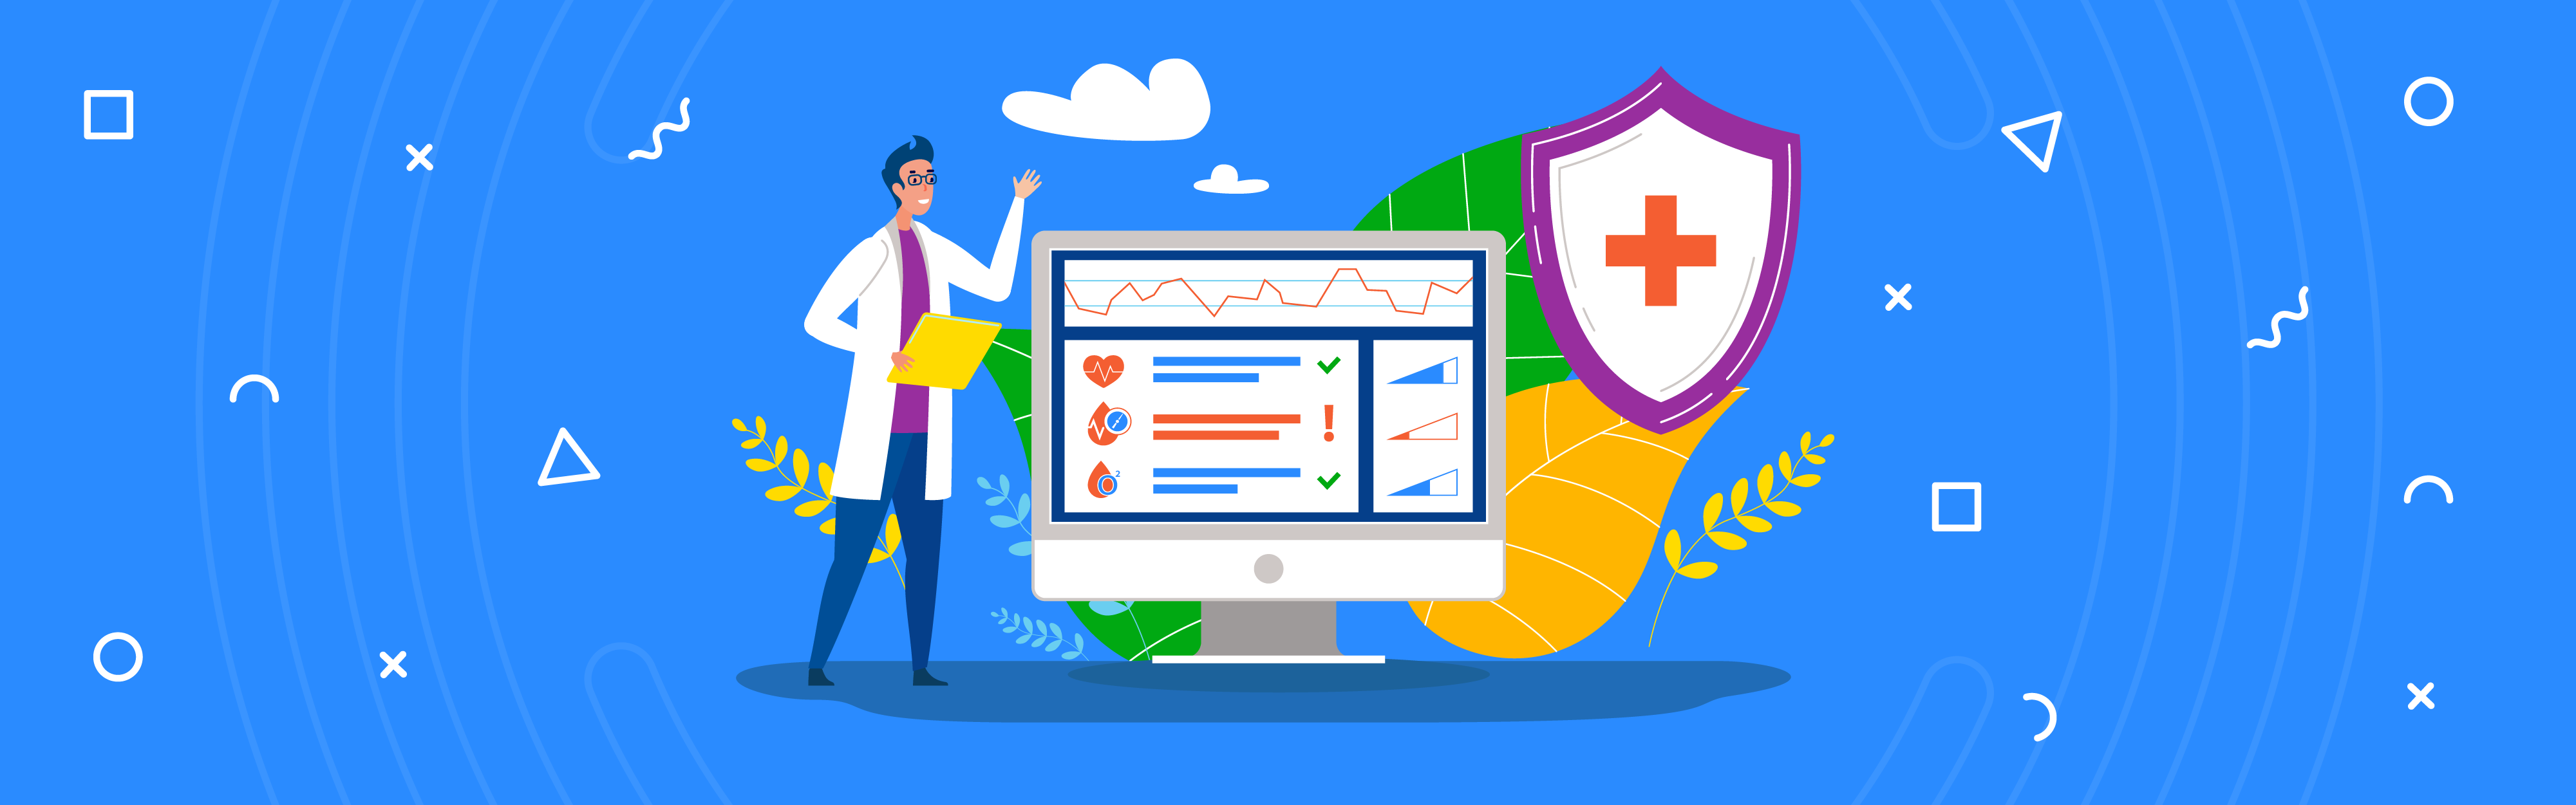 Marketplace Platforms for Healthcare to Foster Medical and Insurance Processes